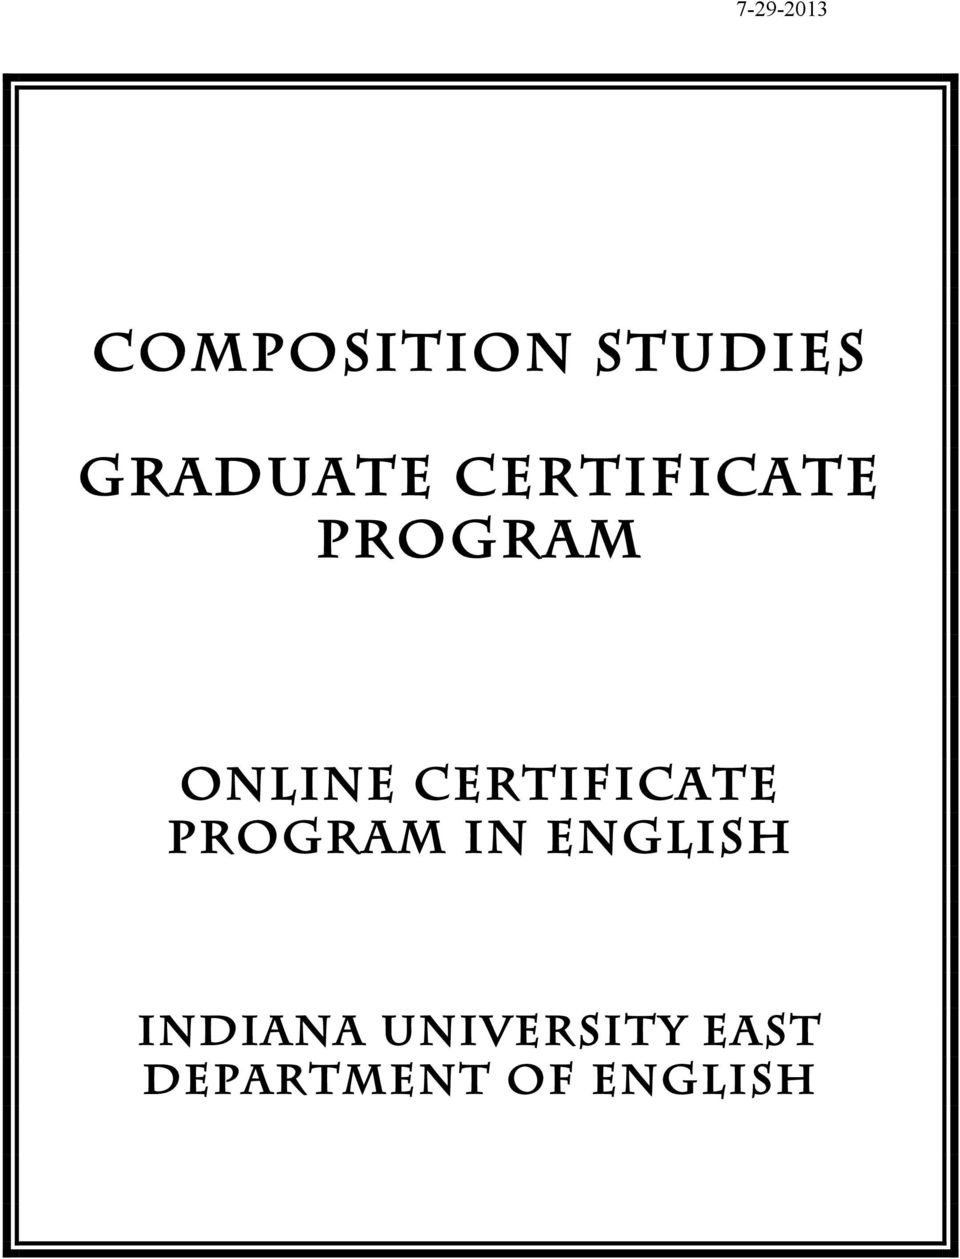 Certificate Program in English